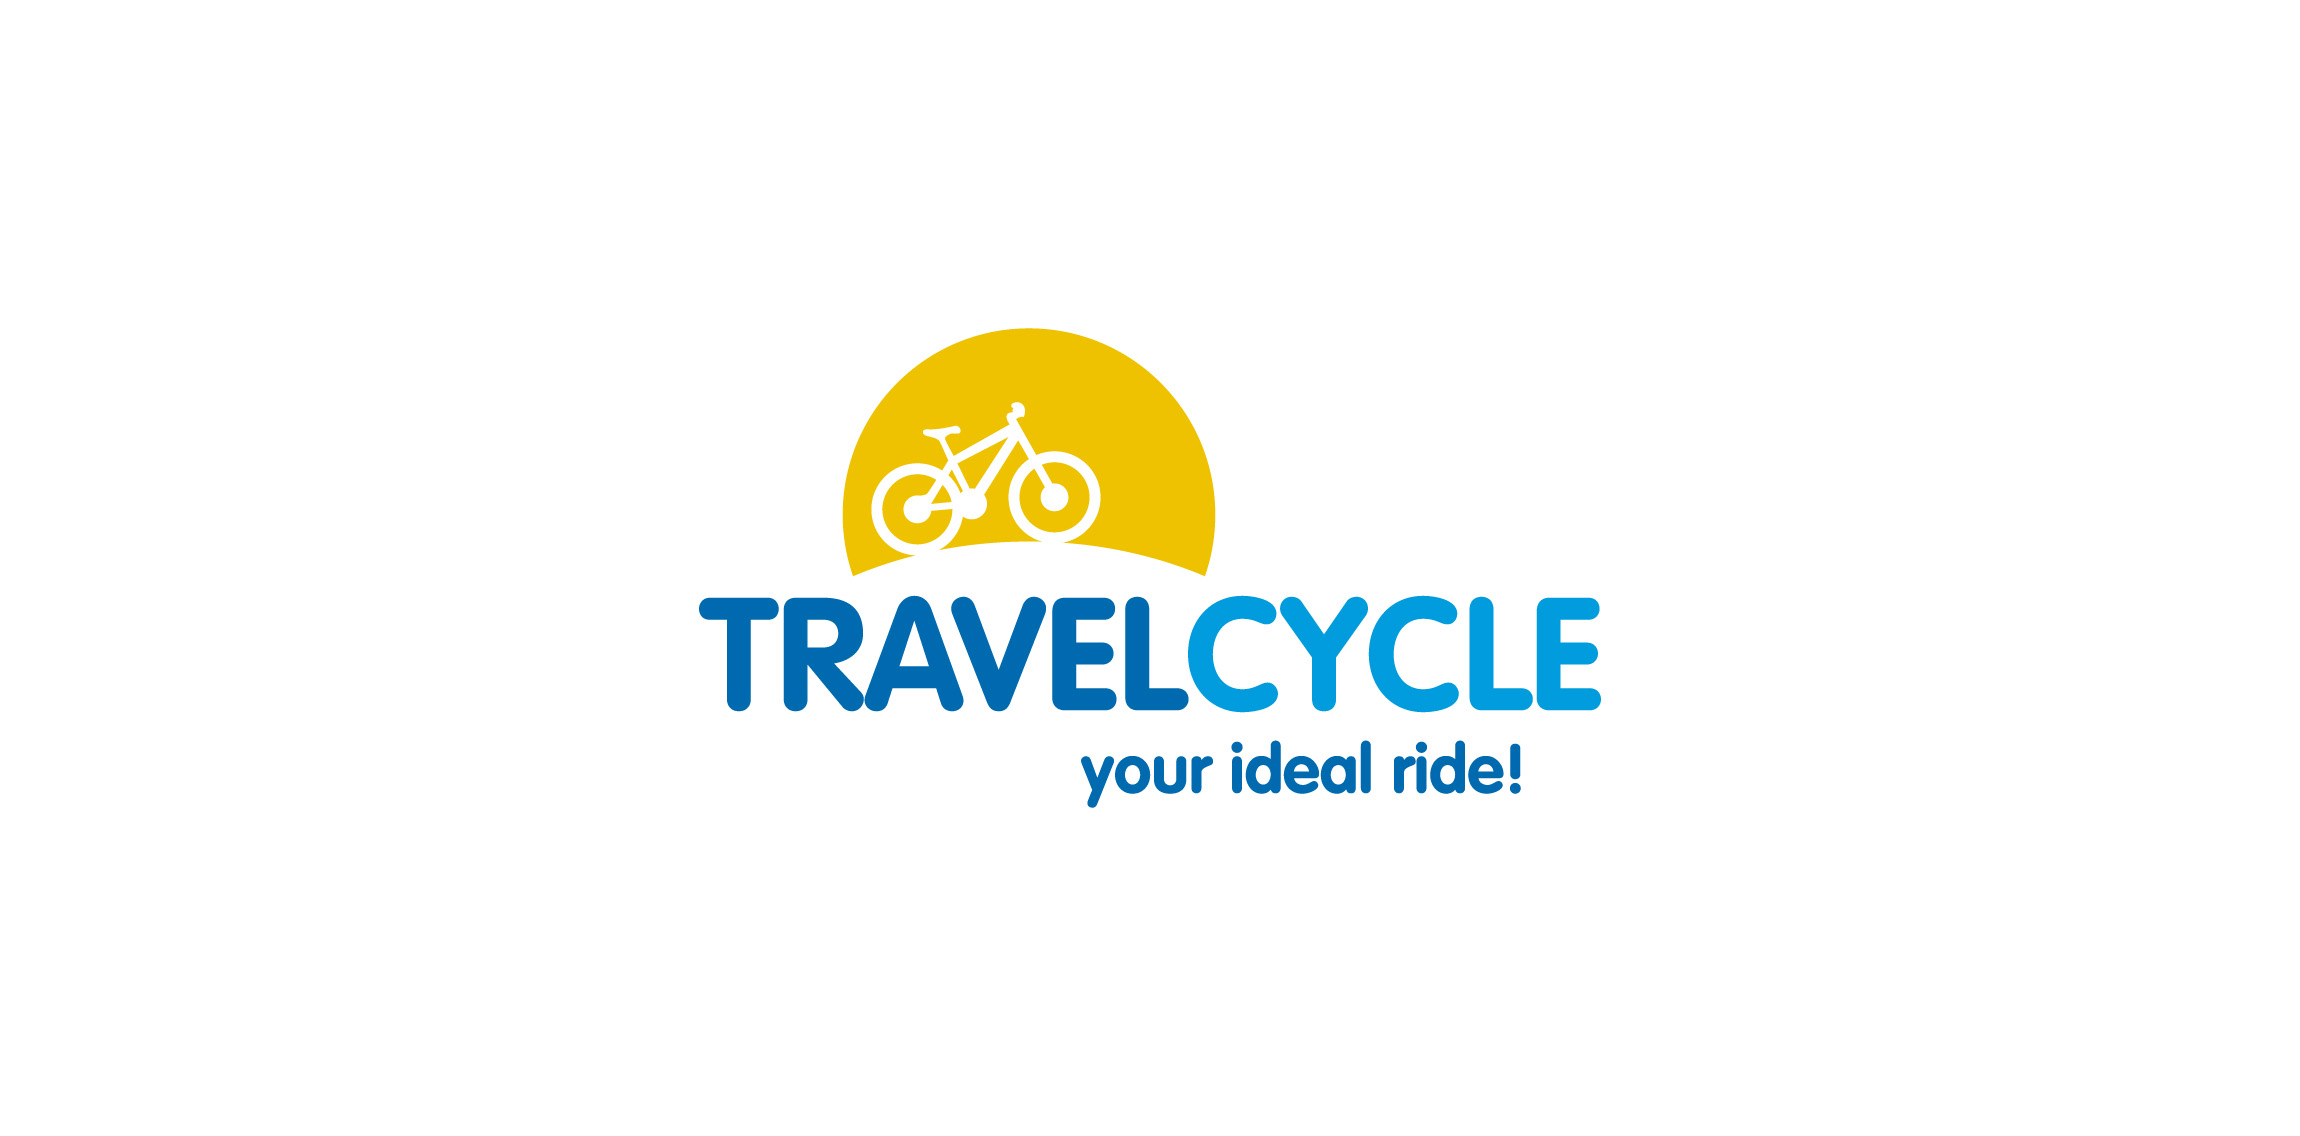 Travel Cycle